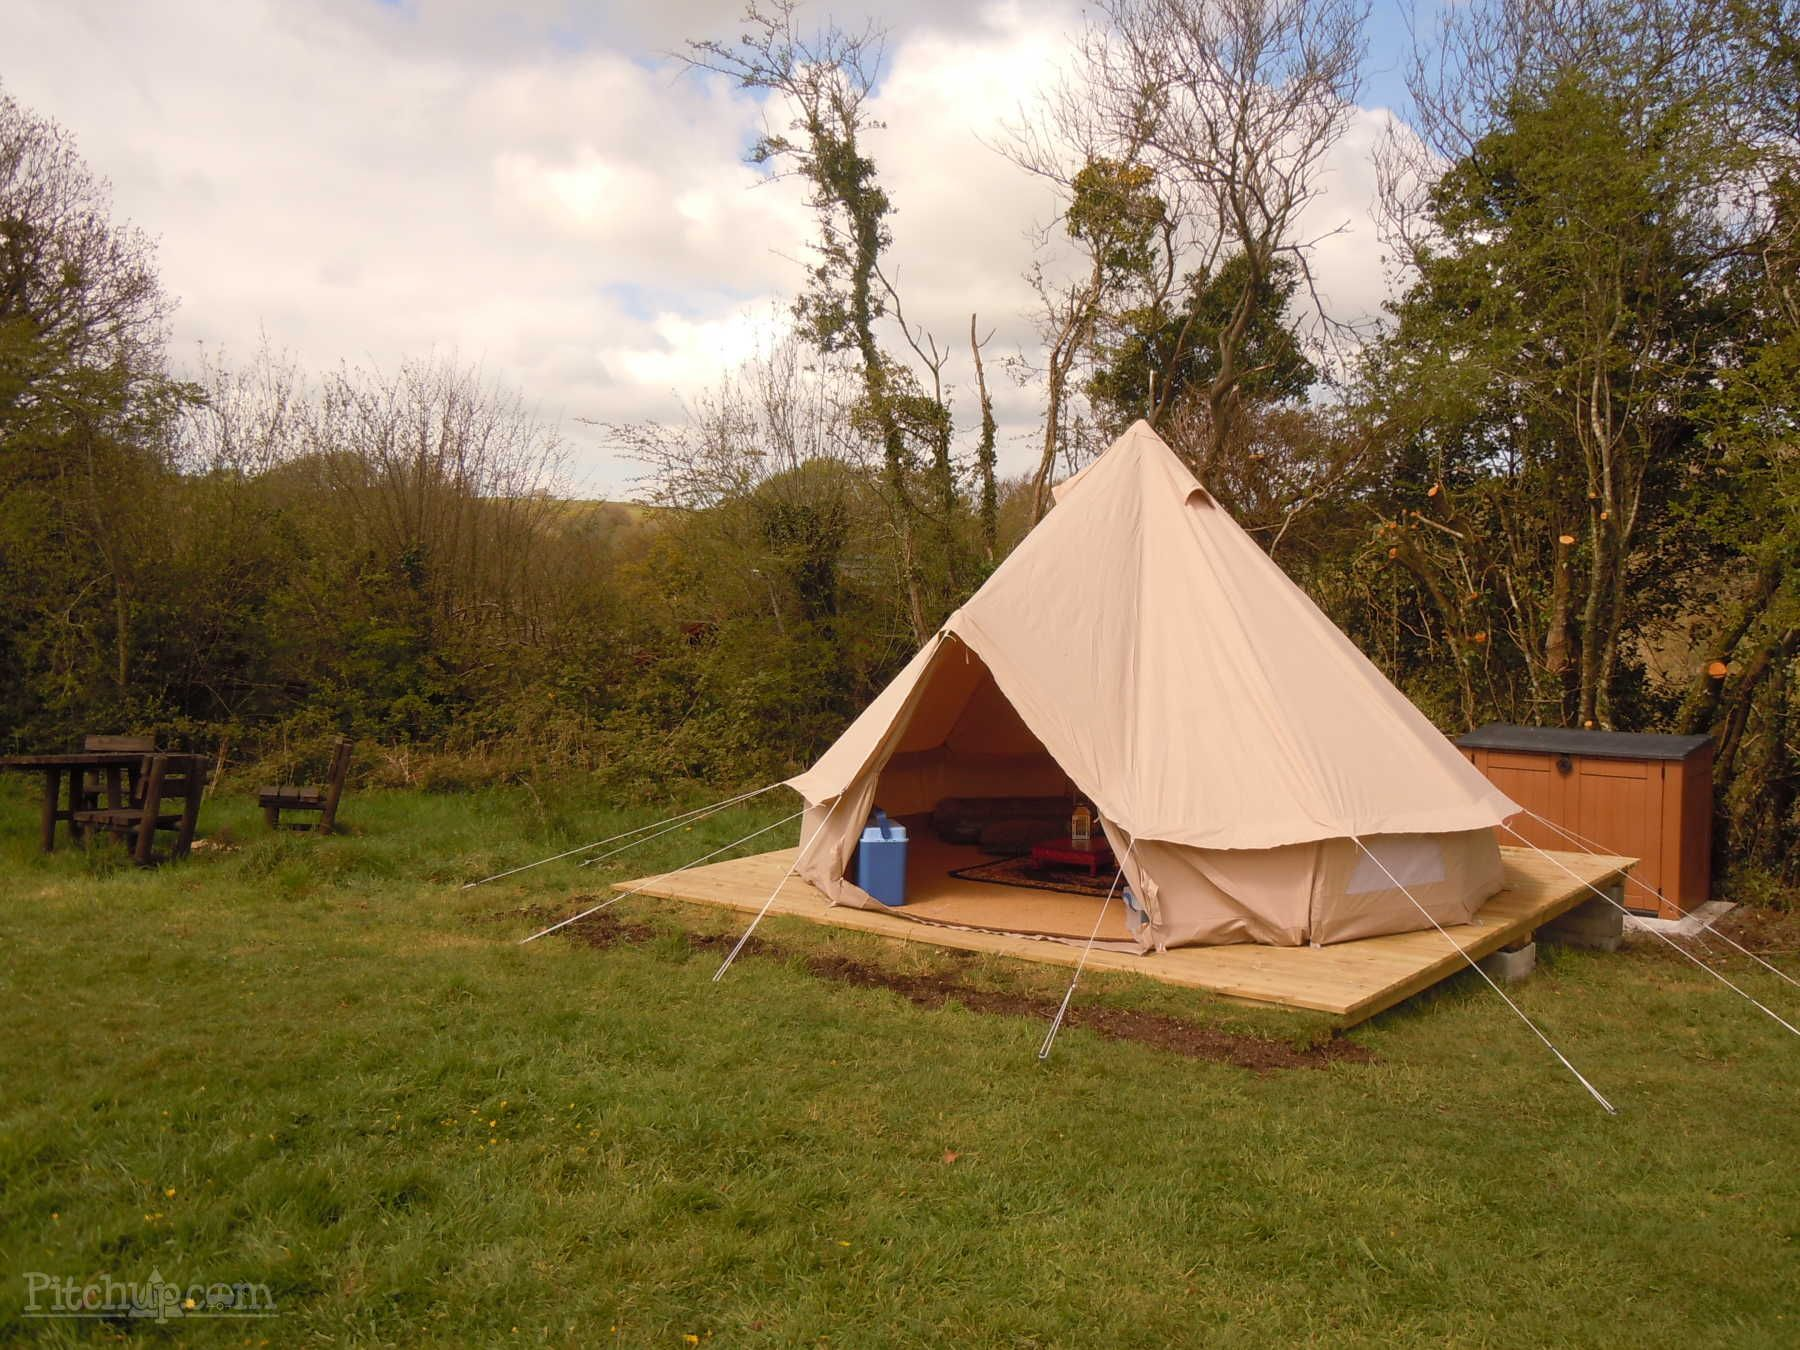 C&ing & Acorn Camping and Glamping Par Cornwall | Cornwall and Camping